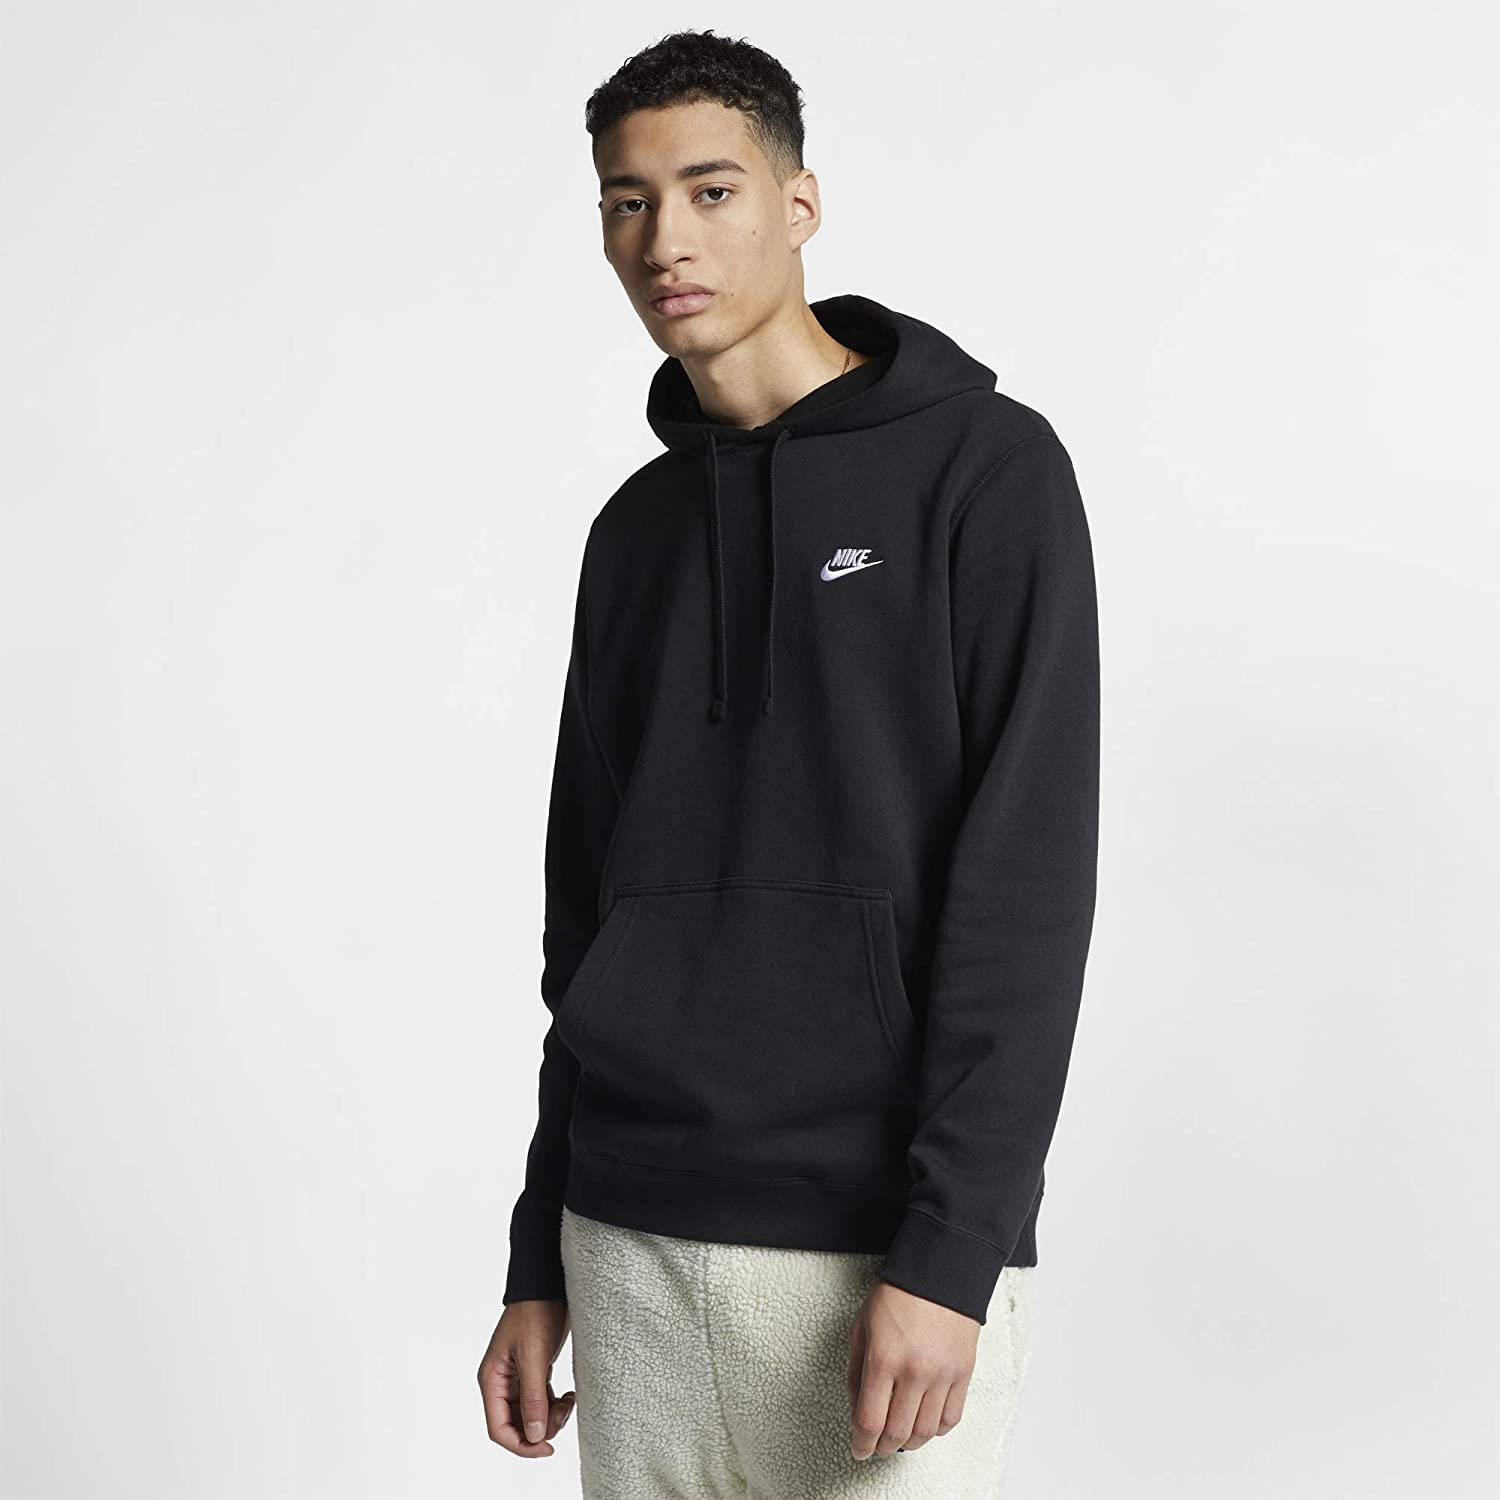 noir noir blanc XL Nike M NSW sweat à capuche Po FLC Club Sweat-Shirt à Capuche Homme